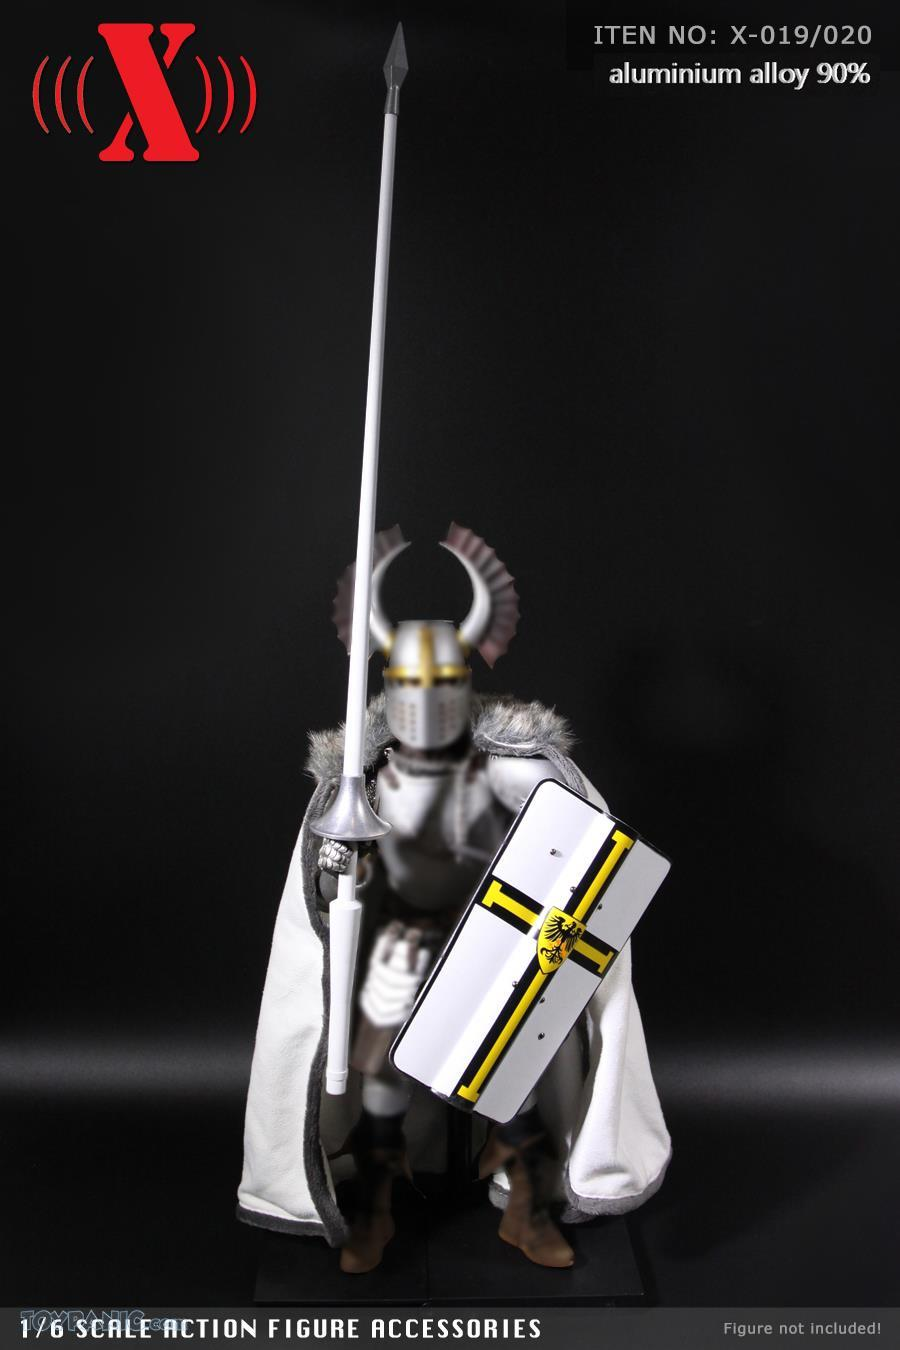 Shield - NEW PRODUCT: X TOYS: Medieval Weapons: Alloy Spear (Lance) (2 styles) & Aluminum Alloy Shield (4 styles) 1780